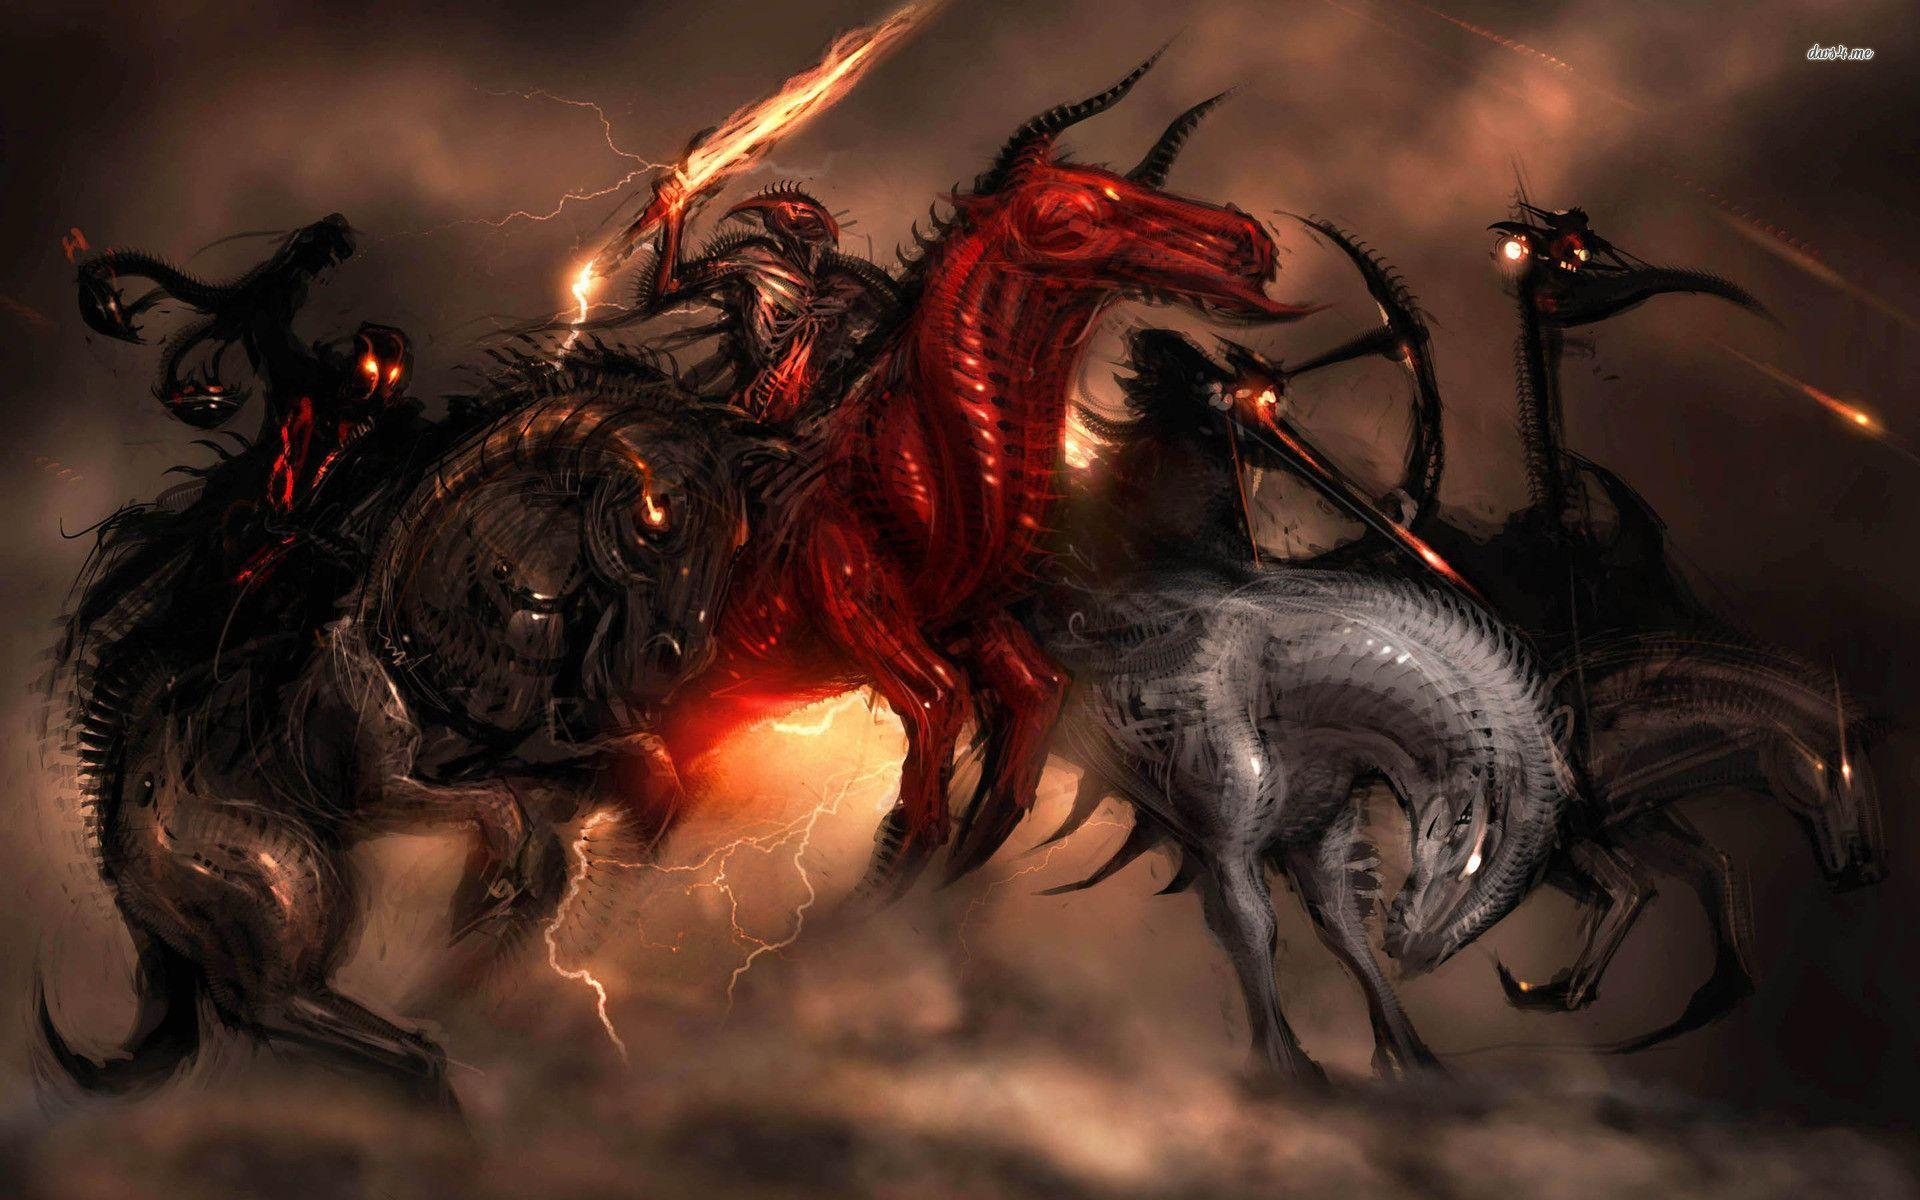 The Four Horsemen Of The Apocalypse Wallpapers   Wallpaper 1920x1200